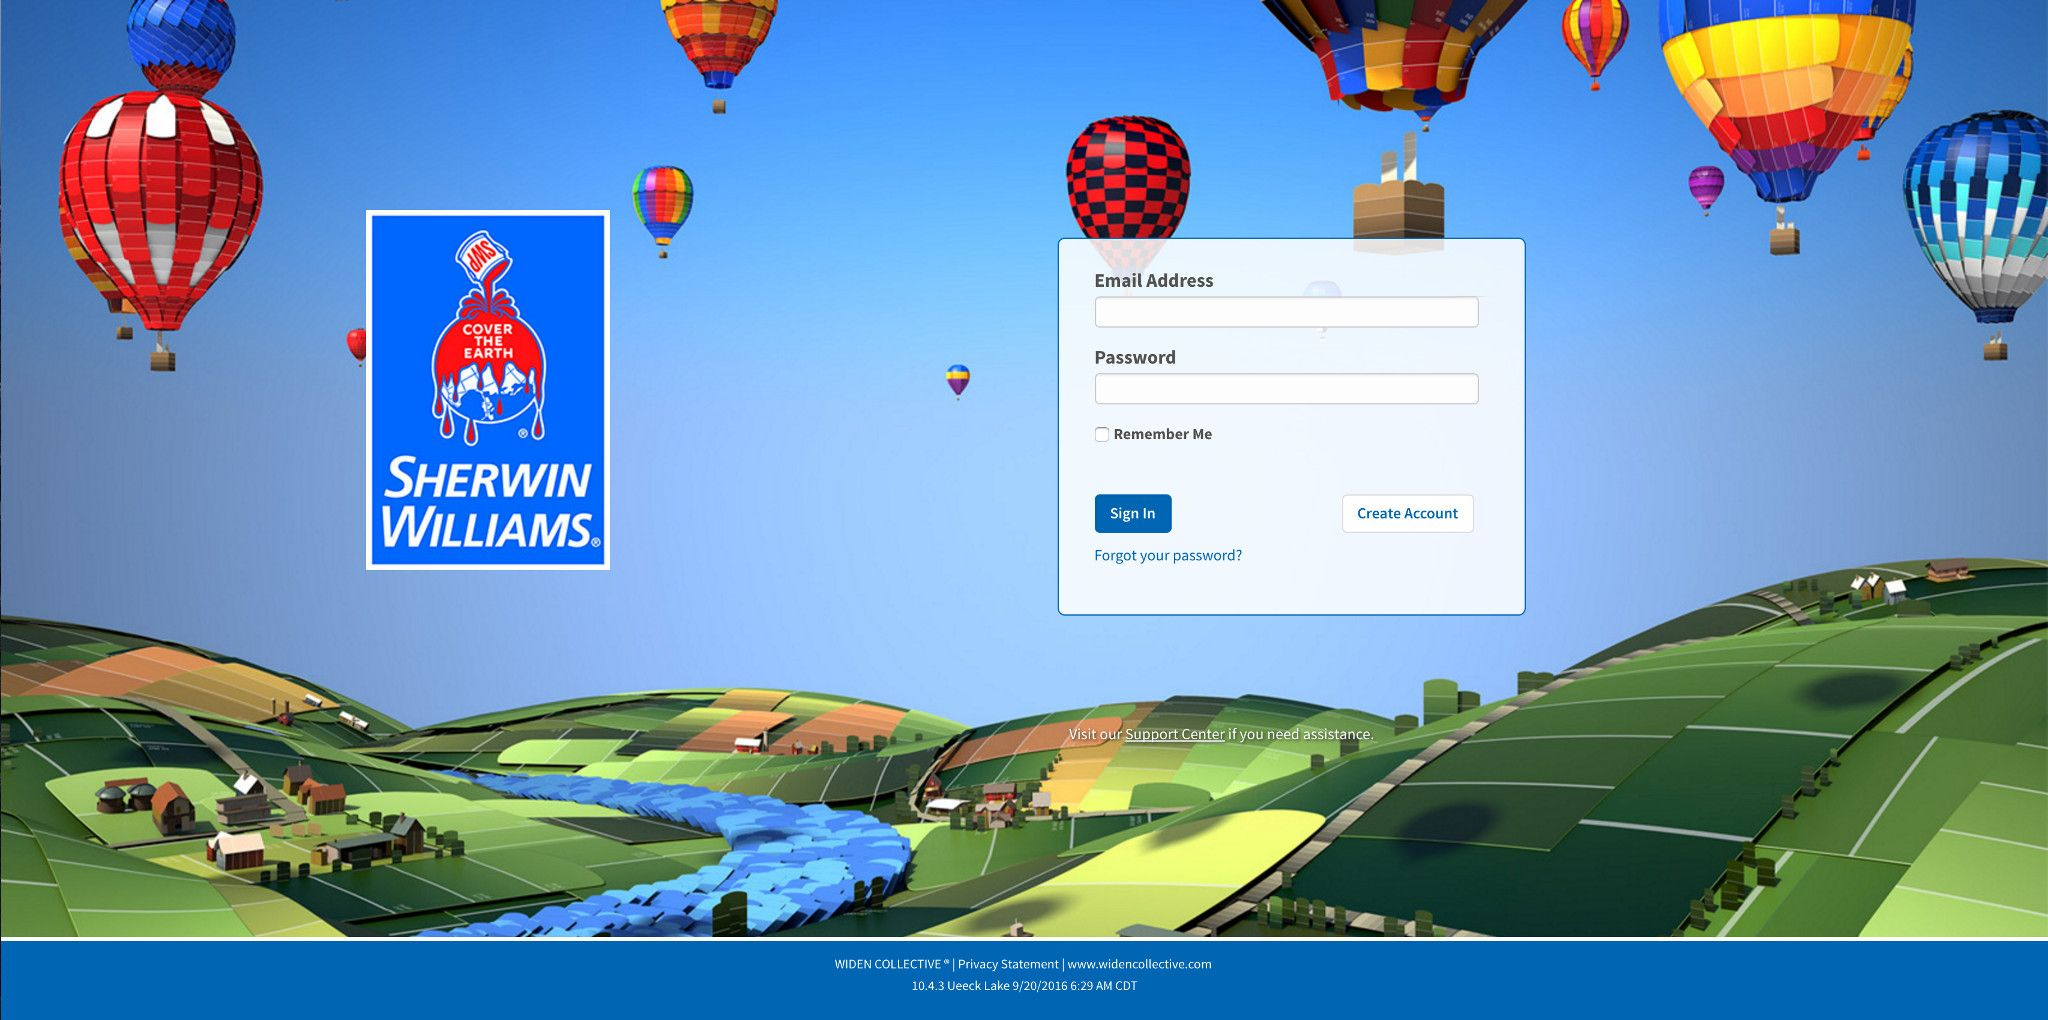 Sherwin Williams login page example